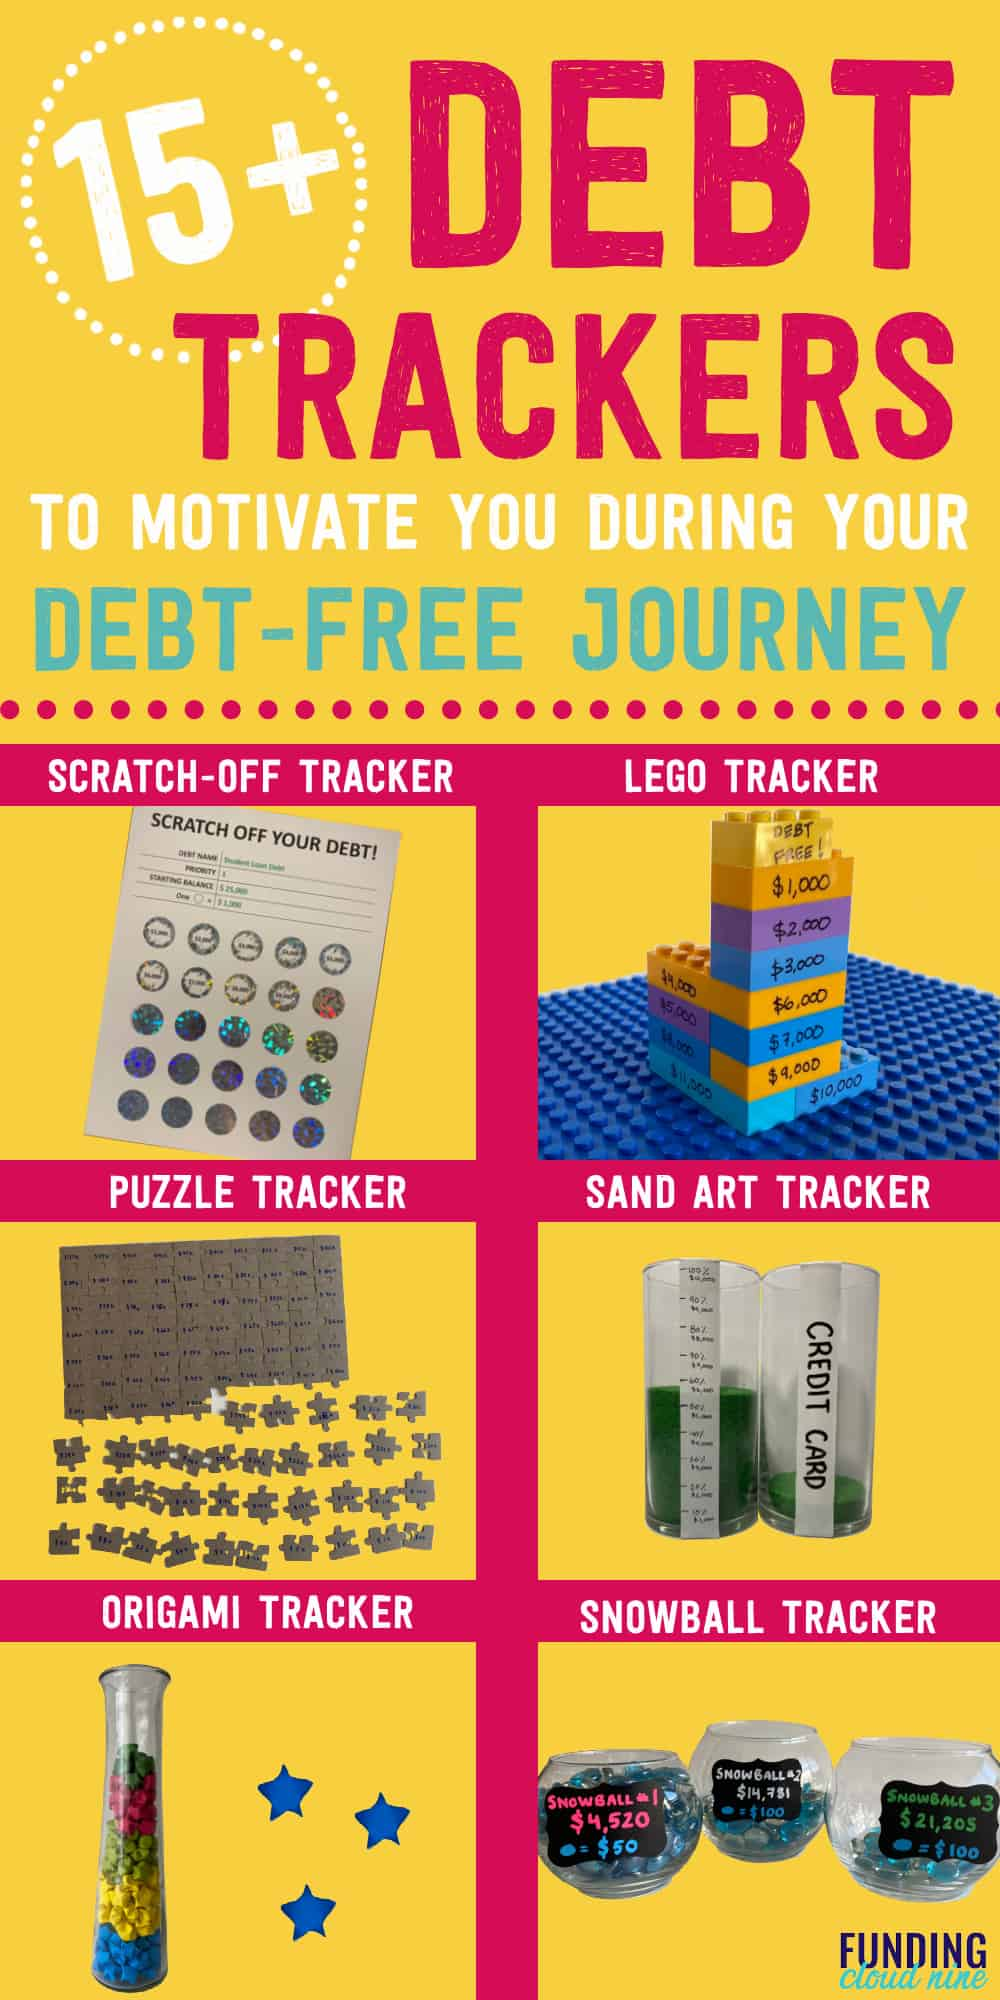 Using a debt tracker can help motivate you during your debt-free journey. Manage your debt and visualize your progress with these debt tracker ideas. From spreadsheets to debt apps to printable debt trackers - you'll find one that suits your needs.